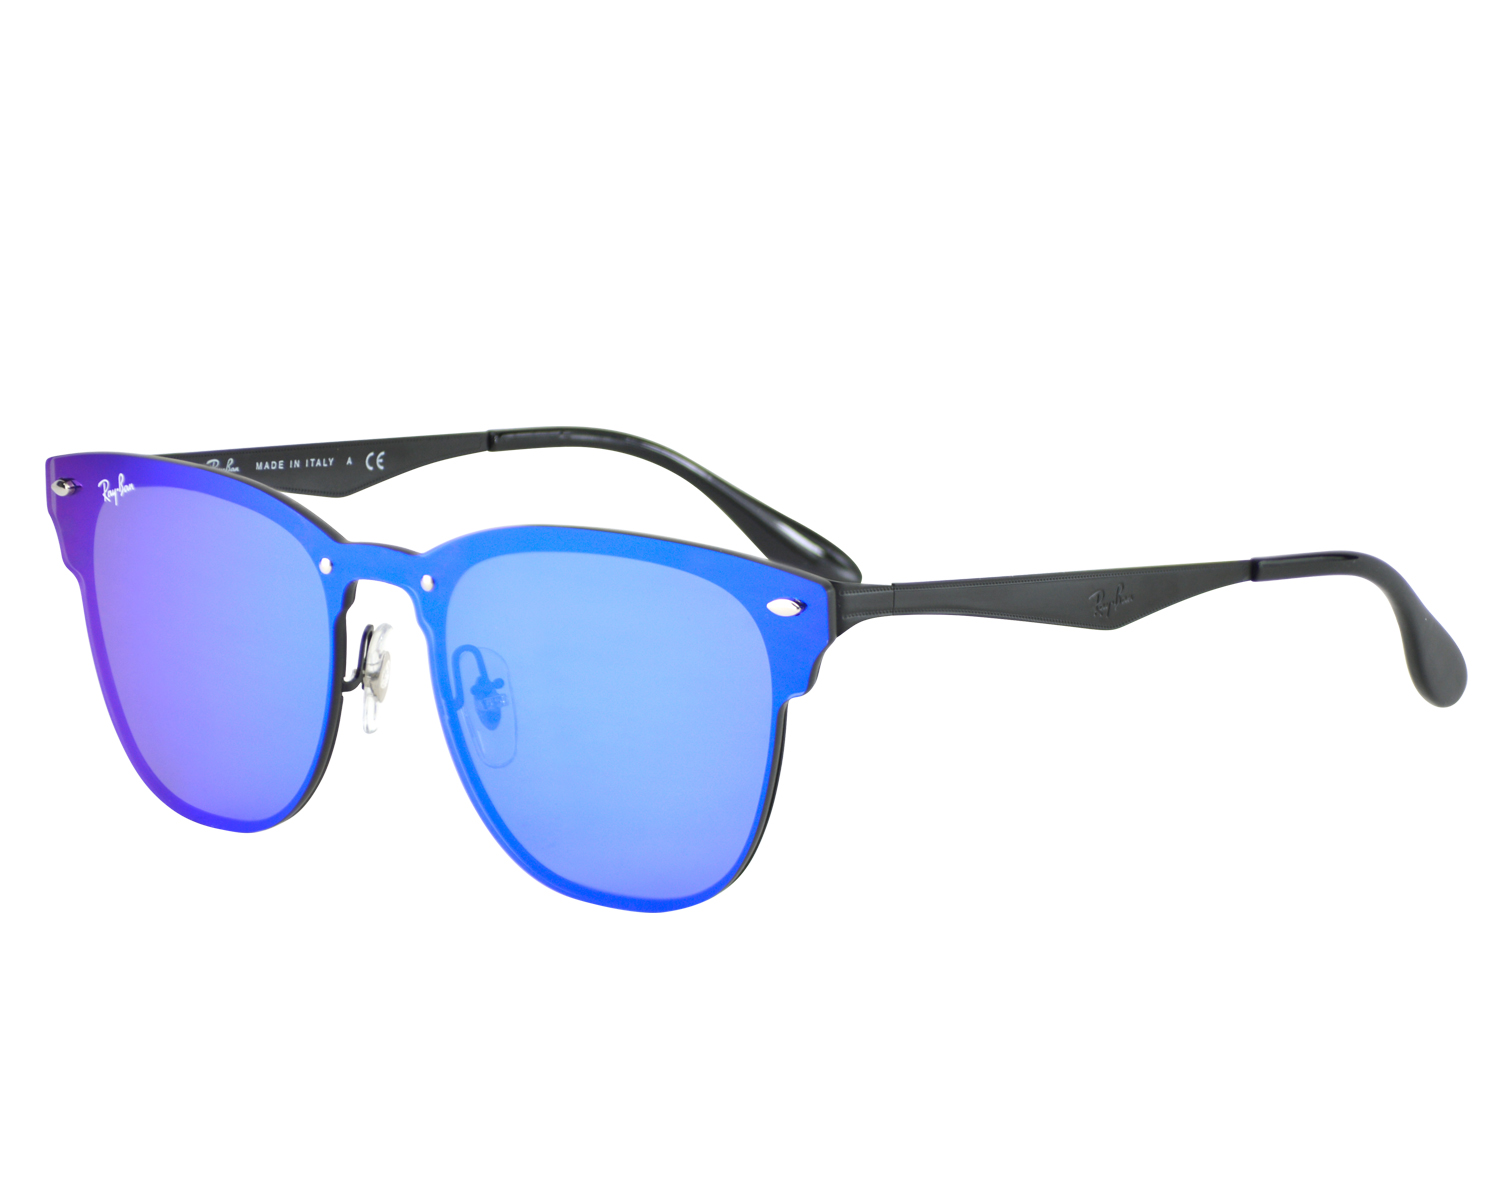 237ad2edad ... coupon code for ray ban rb3576n blaze clubmaster 153 7v black frame  violet blue mirror lenses